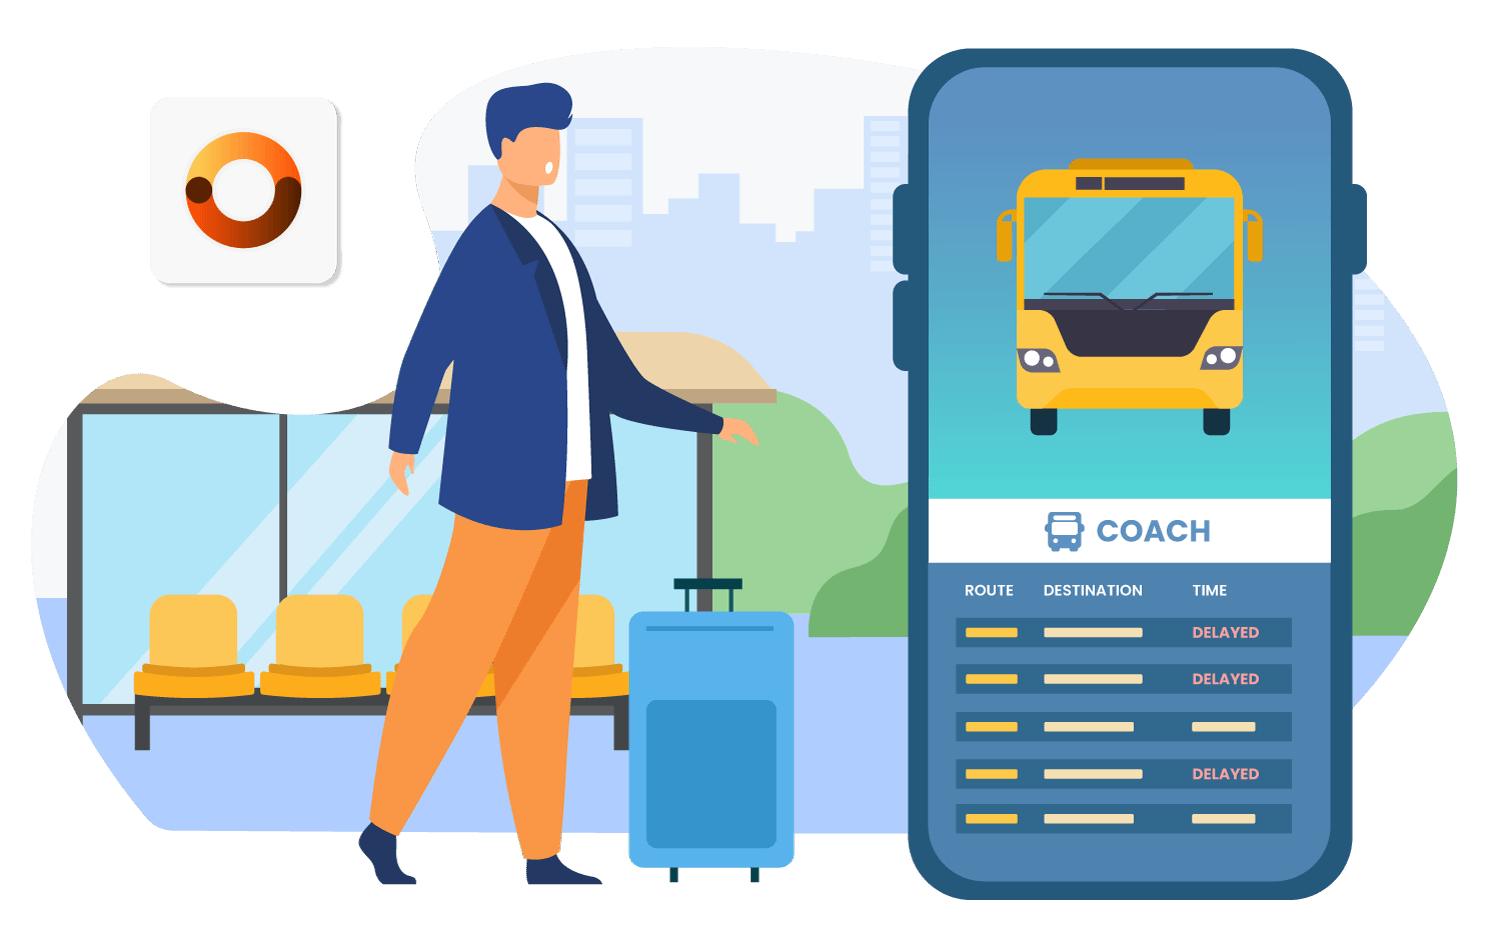 Why-problems-in-public-transport-never-get-solved